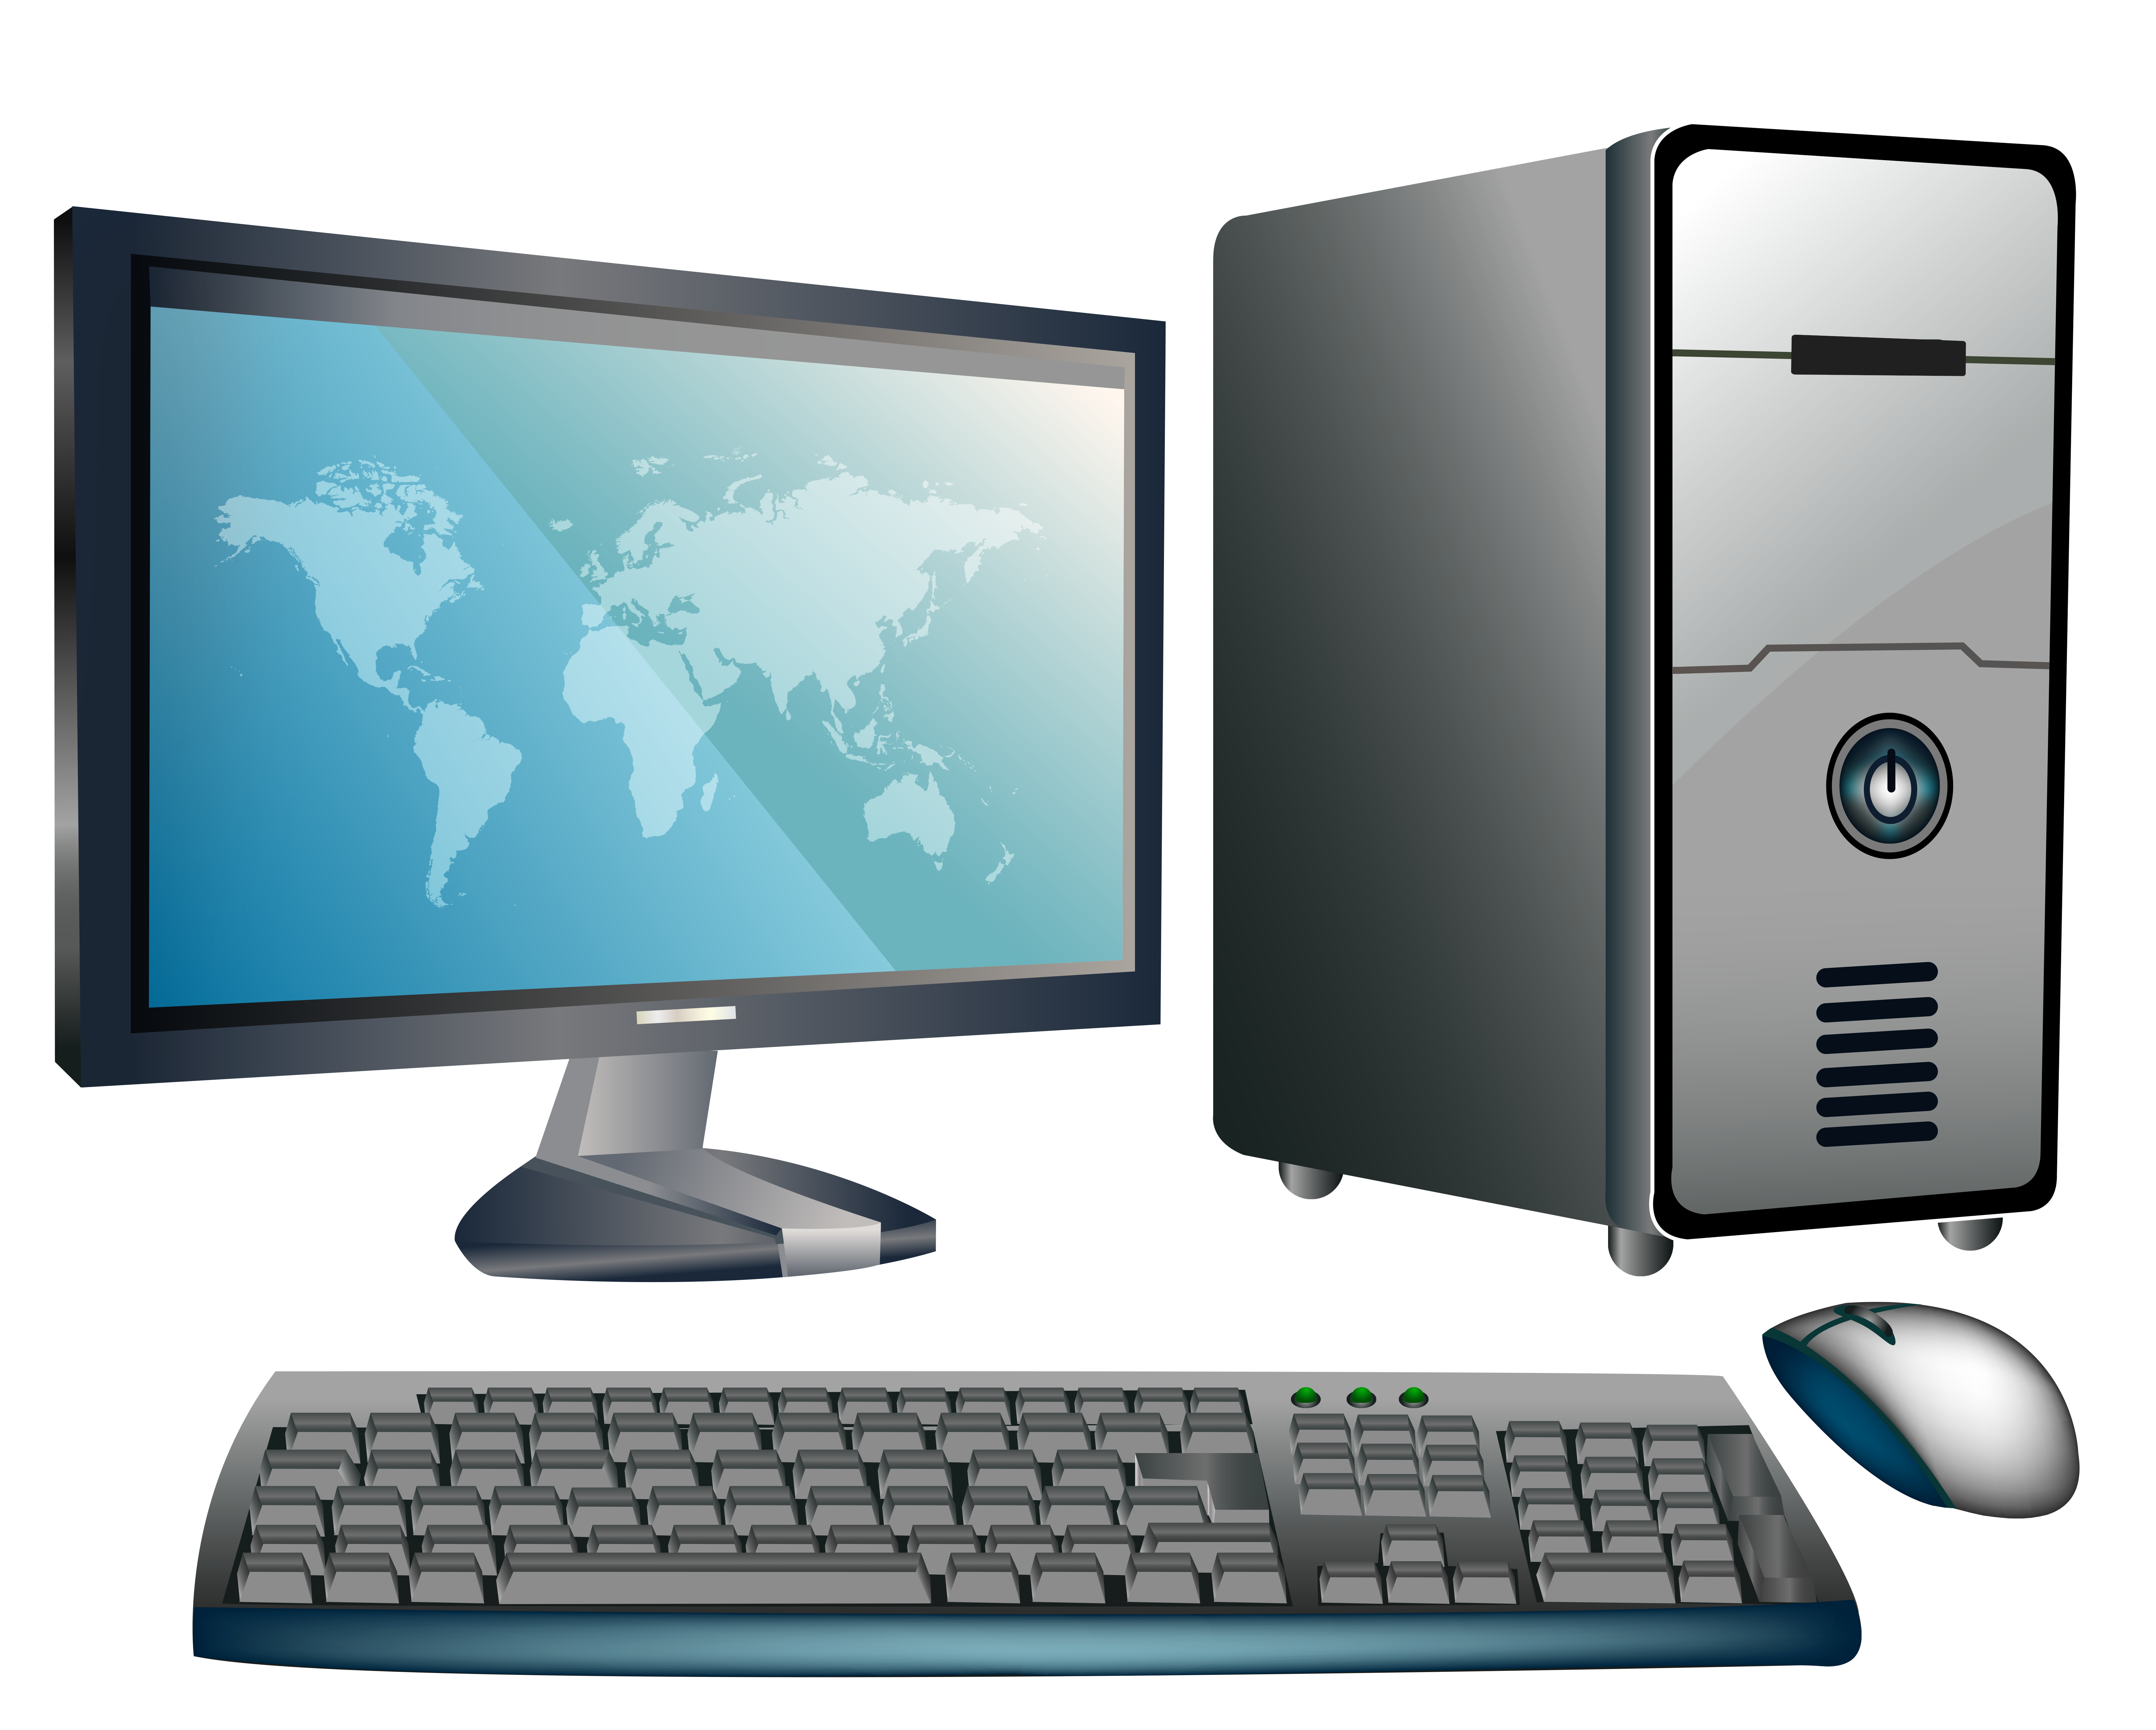 Desktop png best web. Computer clipart image black and white library